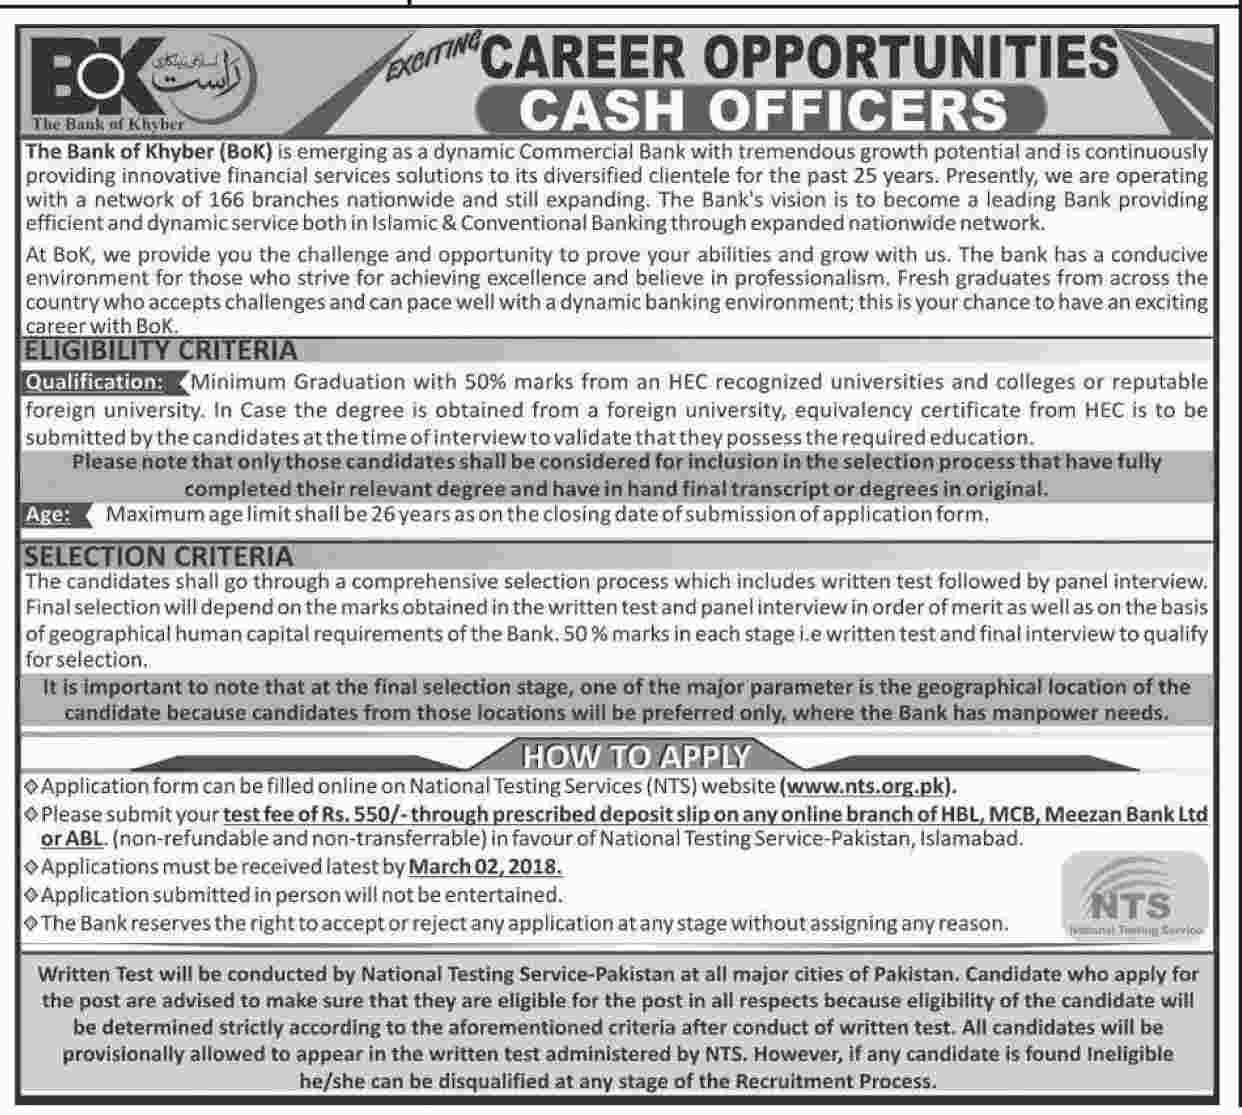 Cash Officers Jobs in The Bank Of Khyber  Feb 2018